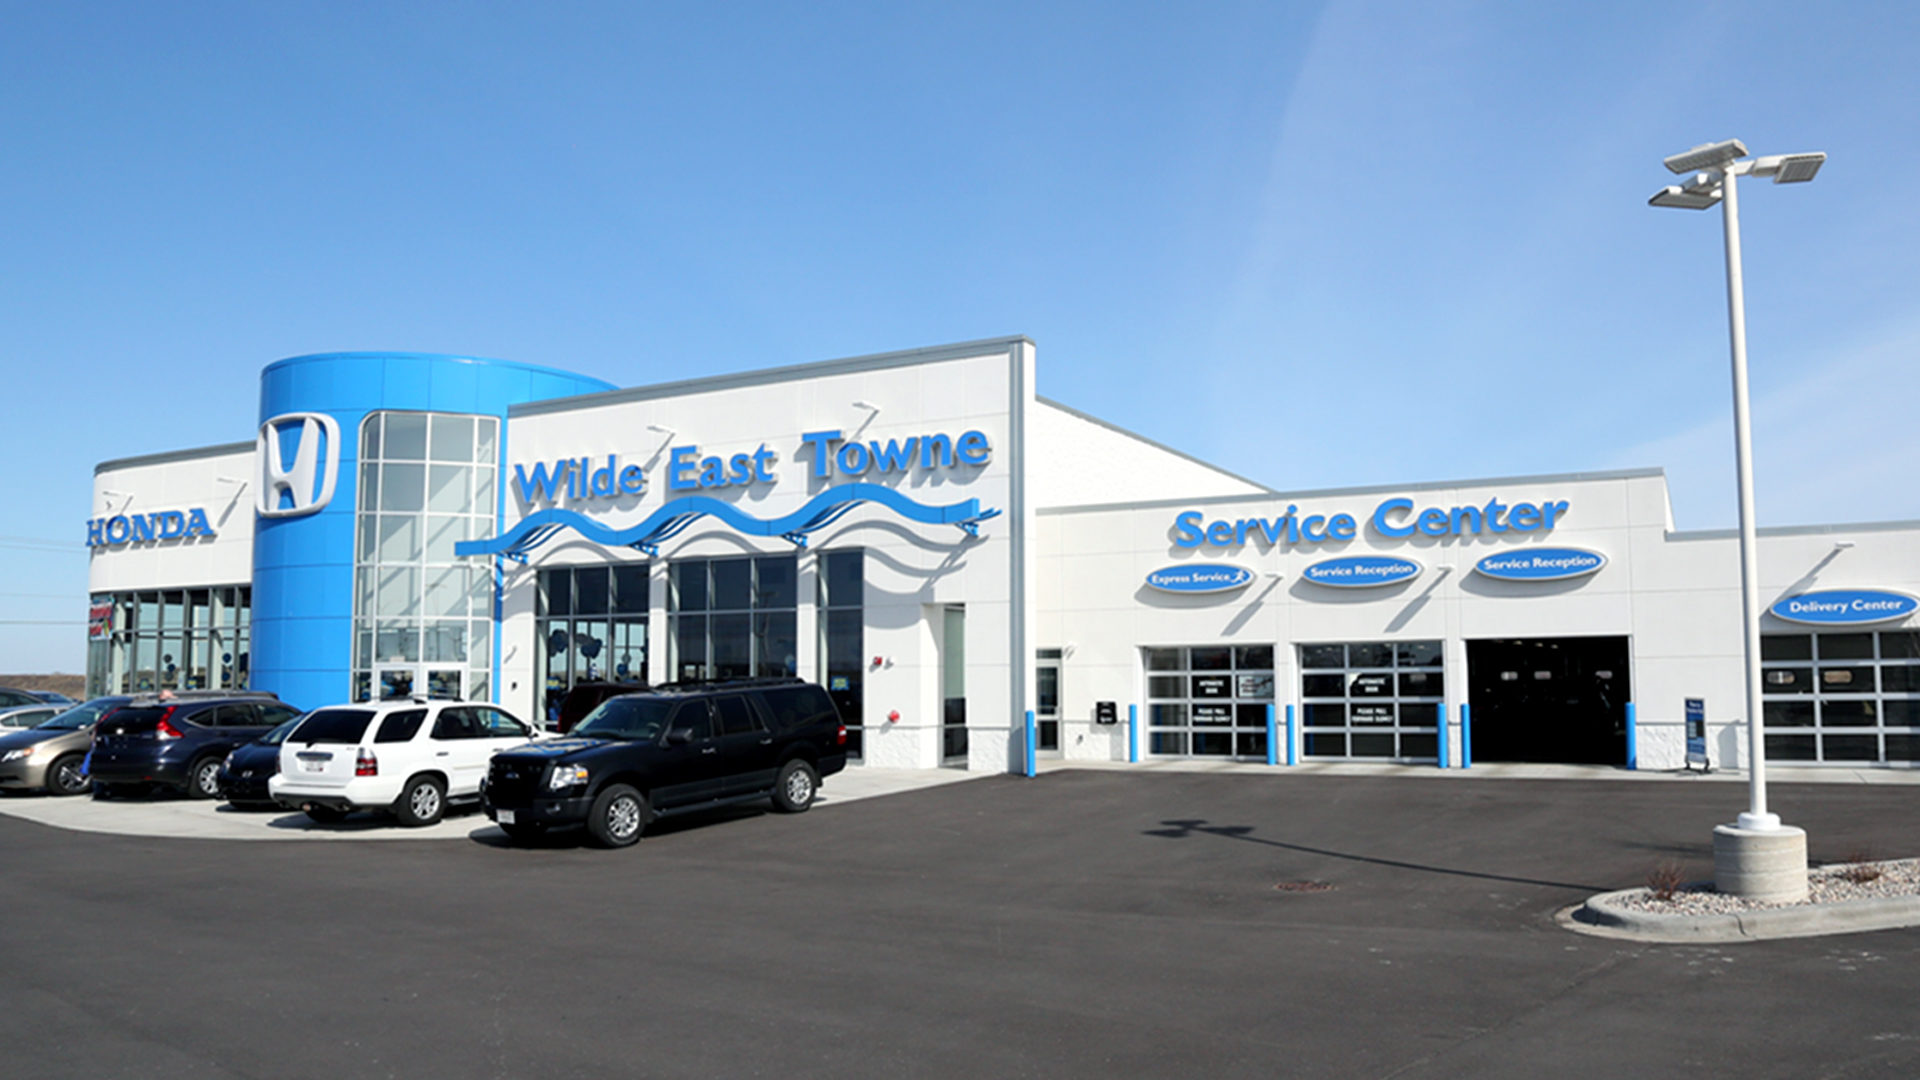 Wilde East Towne Honda Madison W Exterior Front Elevation View